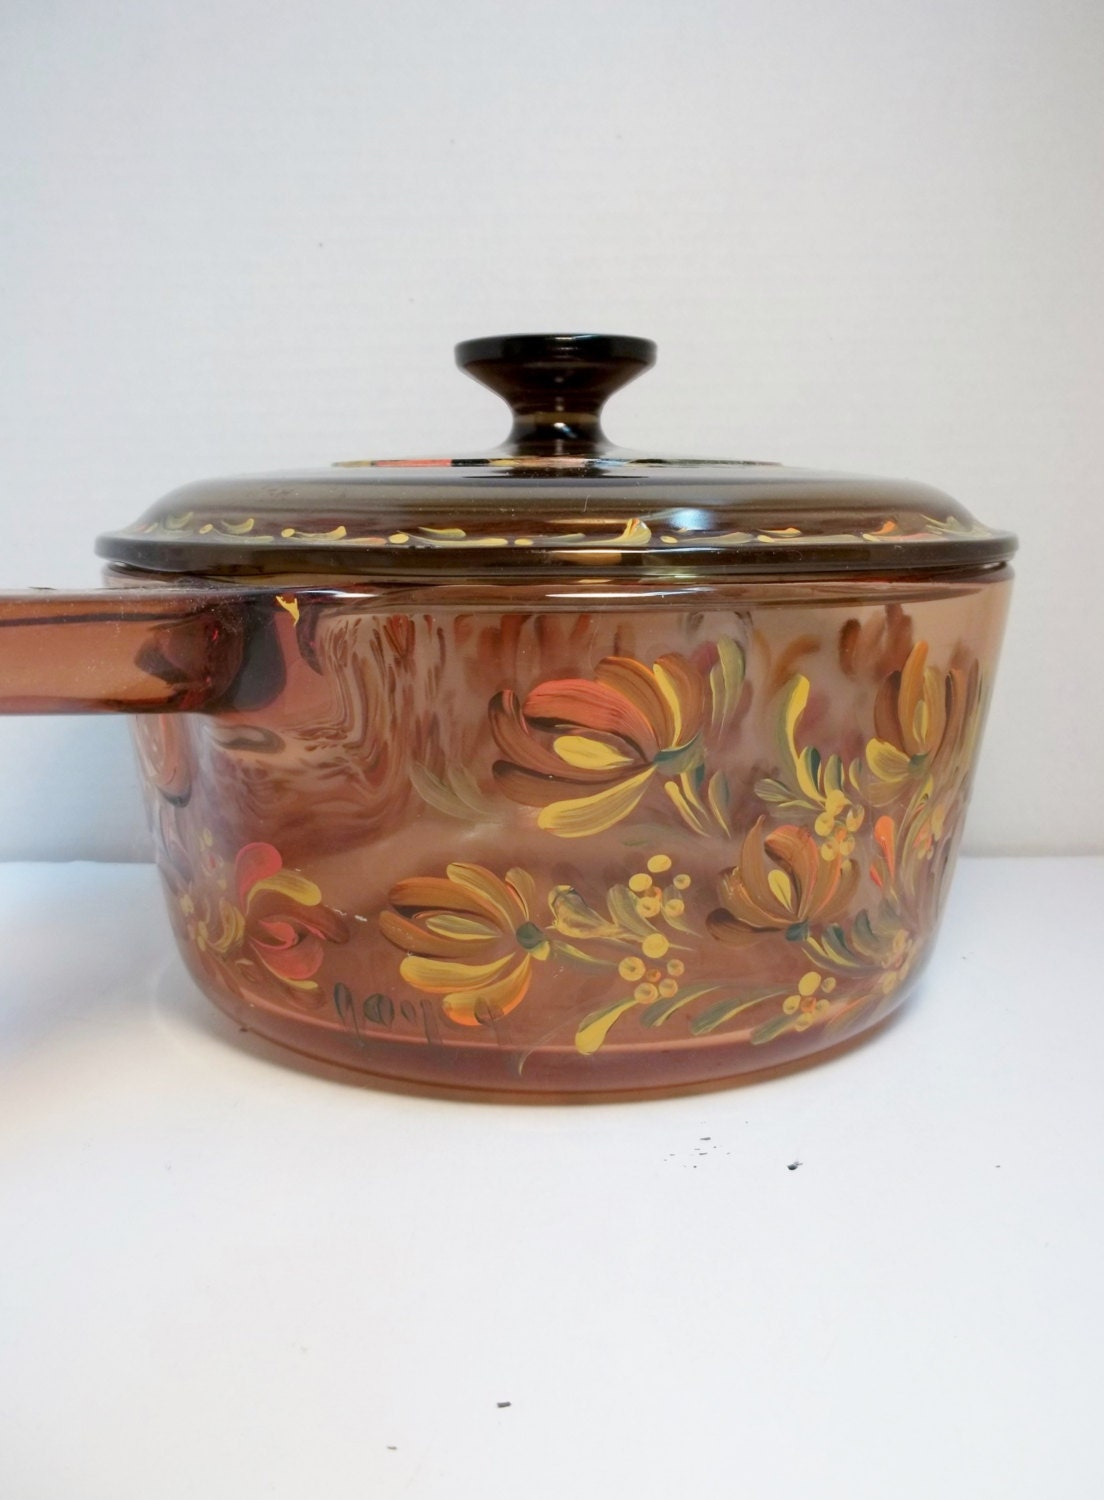 pyrex amber glass stove top cookware sauce pan ovenware hand. Black Bedroom Furniture Sets. Home Design Ideas